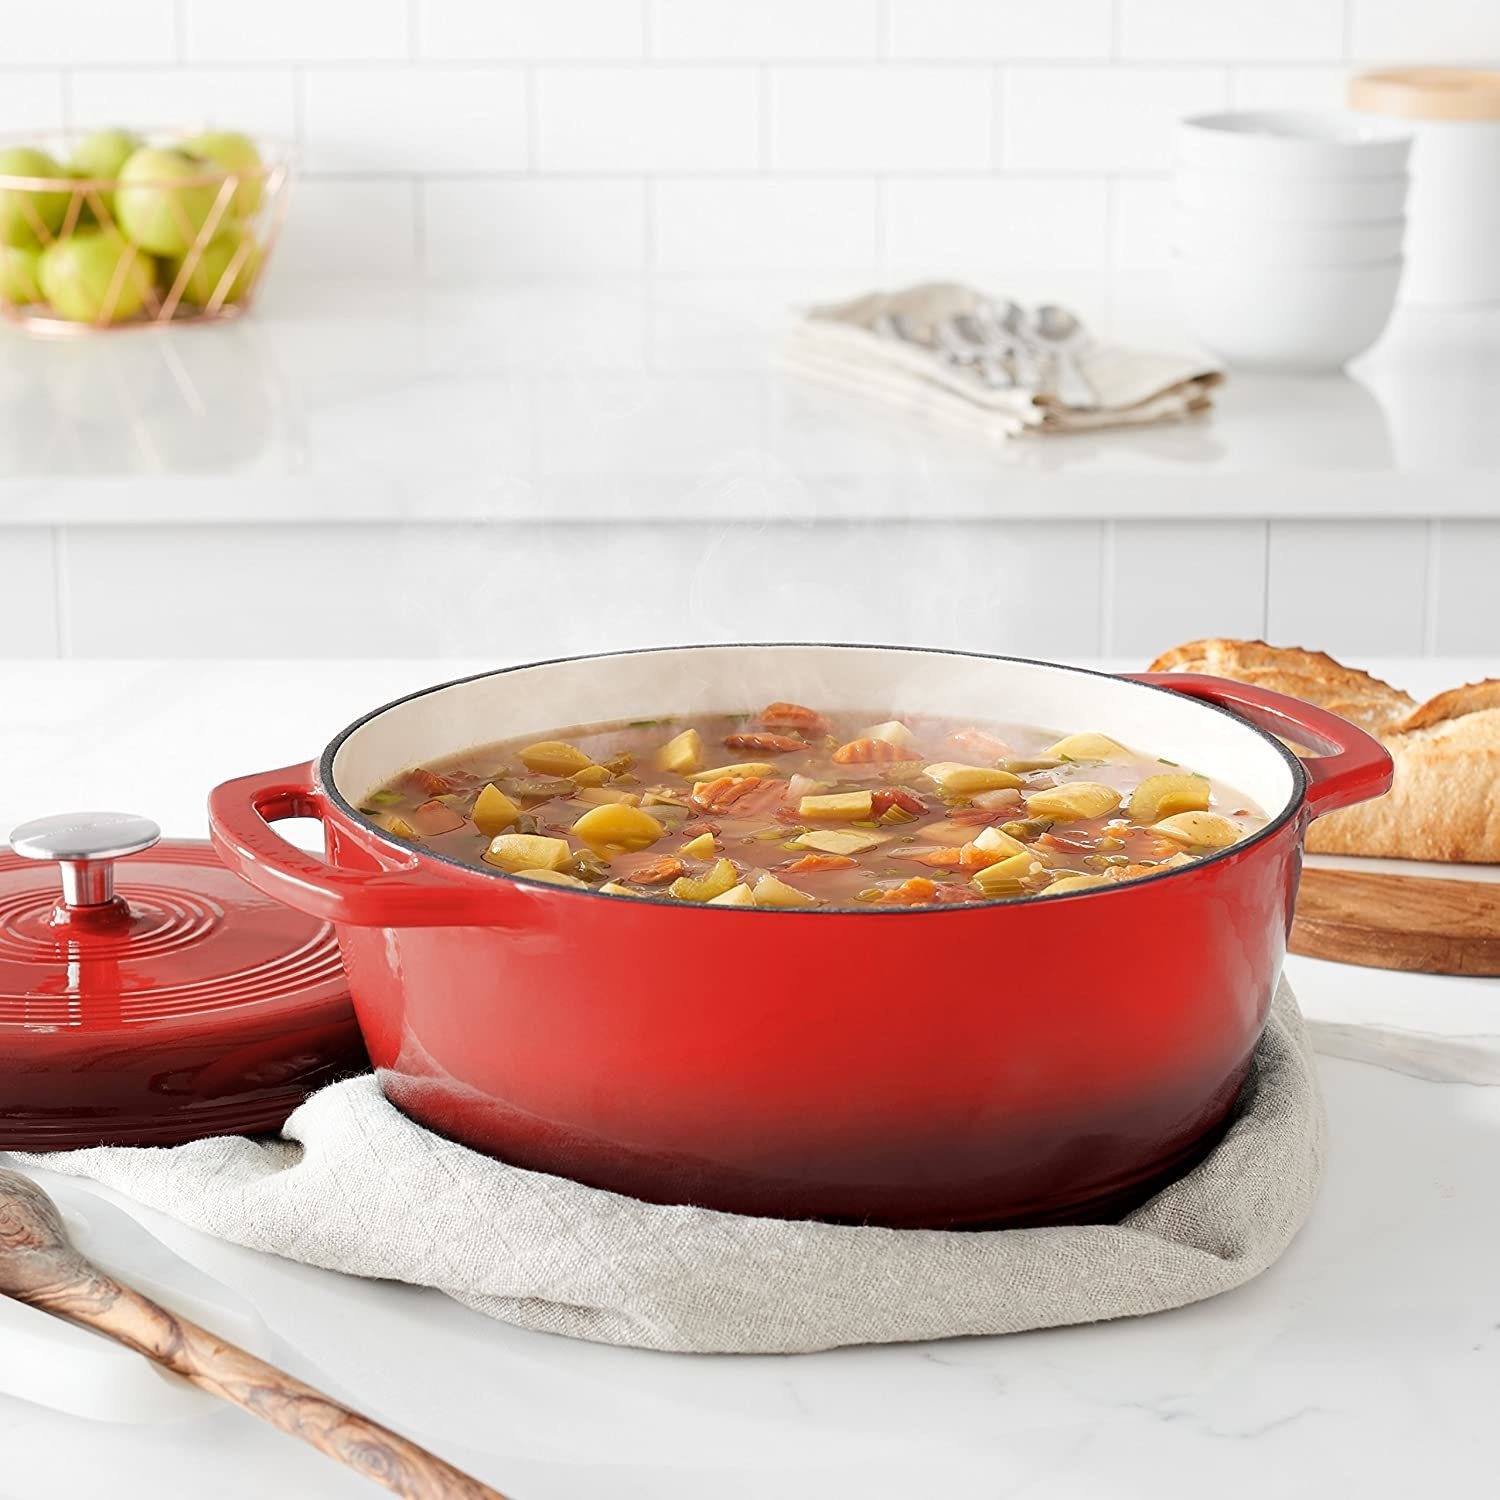 A dutch oven hold a full pot of stew